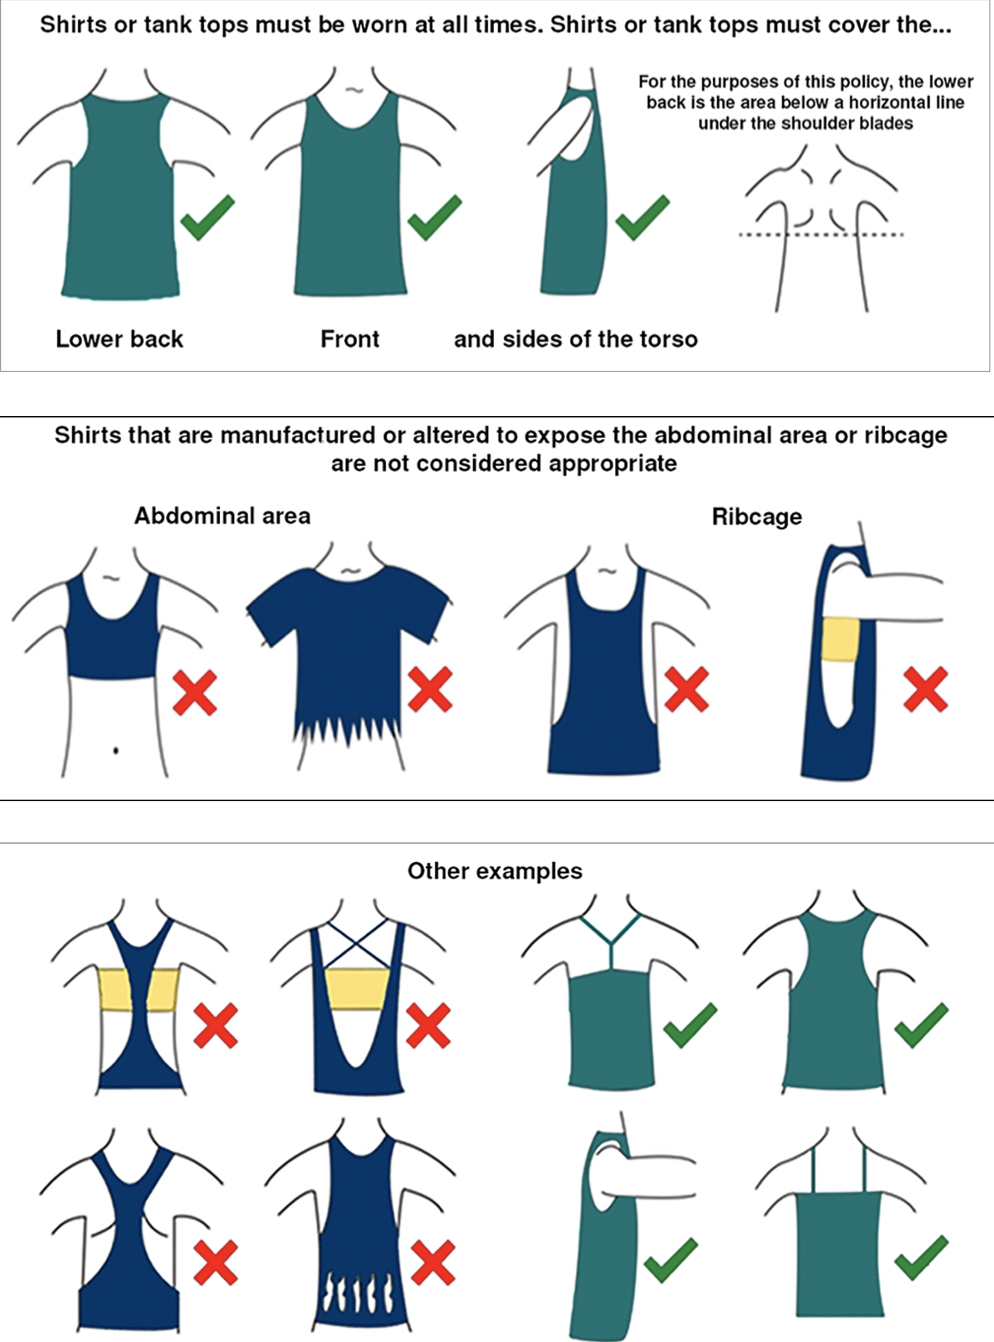 Illustrations regarding the new dress code policy for UNCW's Recreation Center.